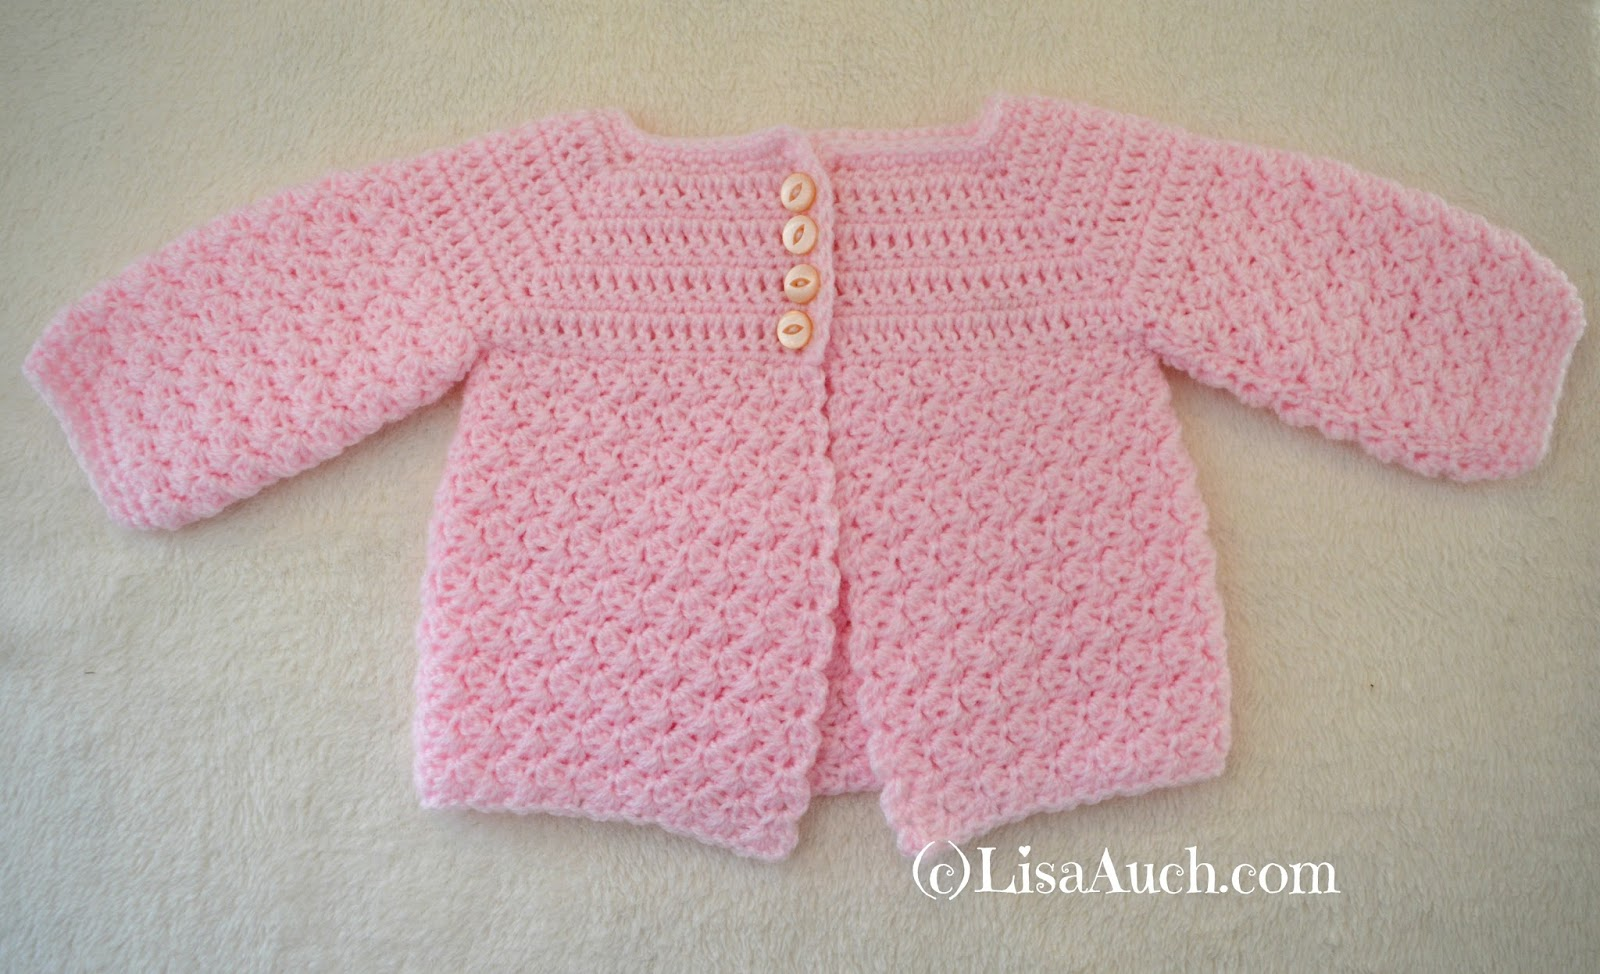 Crochet Newborn Baby Sweater Free Pattern : Crochet Baby Cardigan Easy Free Pattern FREE Crochet ...